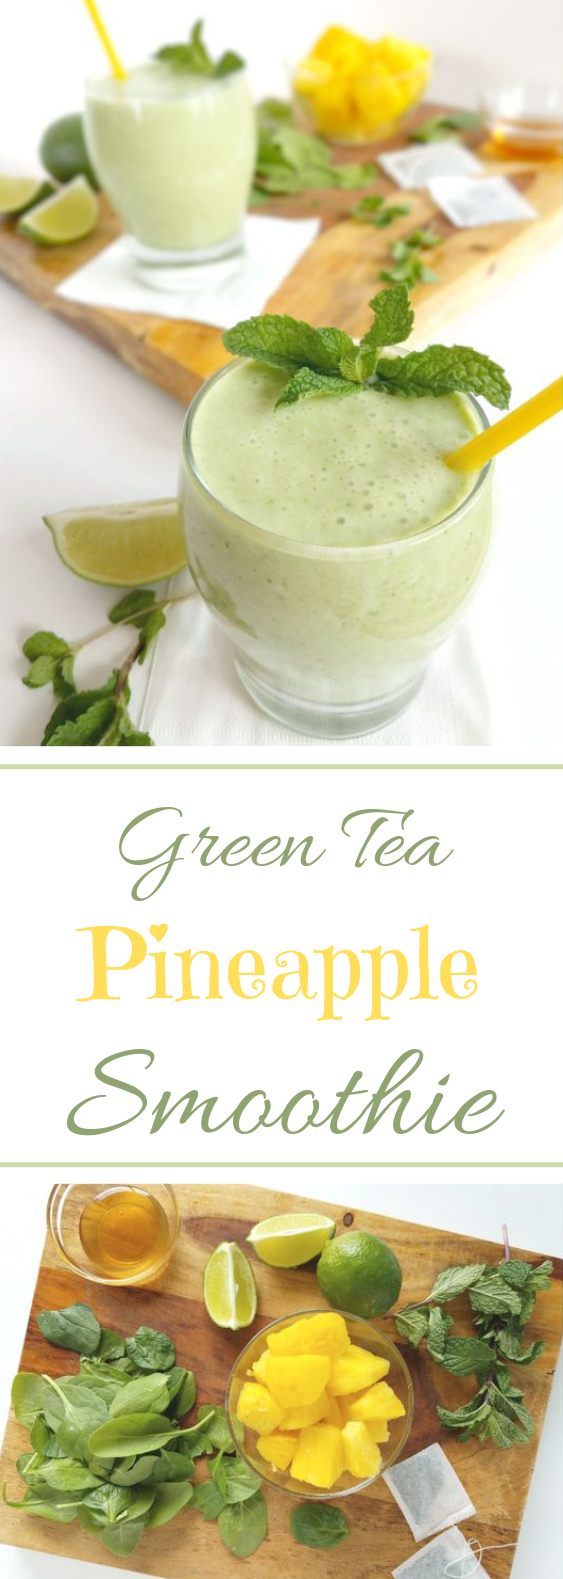 Allergy Busting Green Tea Smoothie #healthydrink #smoothie